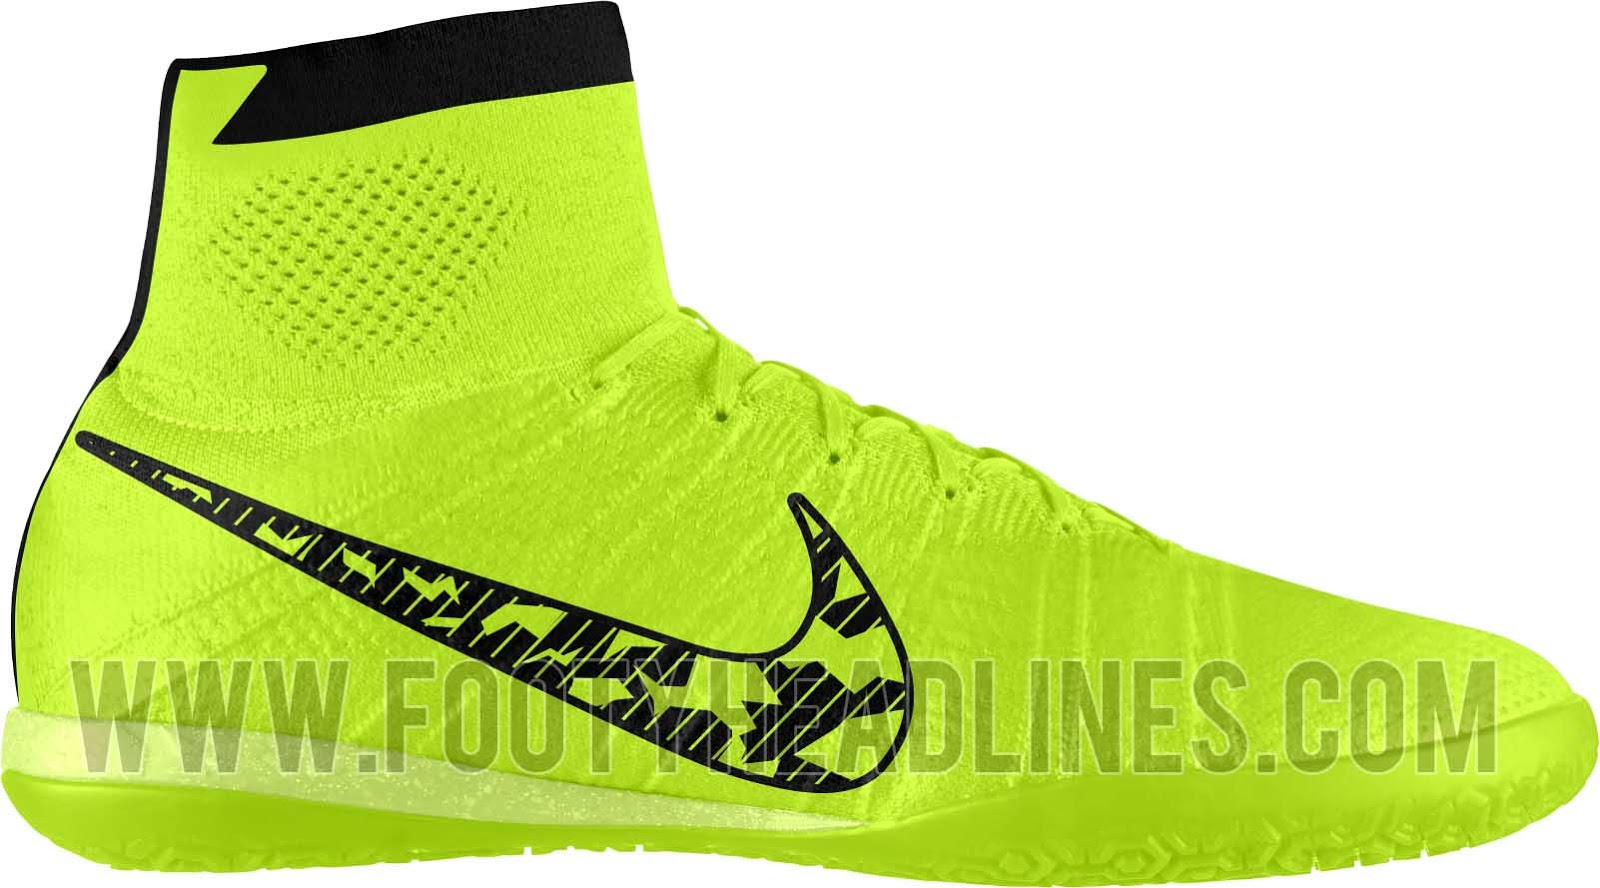 gelbe nike elastico superfly 2015 fu ballschuhe enth llt. Black Bedroom Furniture Sets. Home Design Ideas